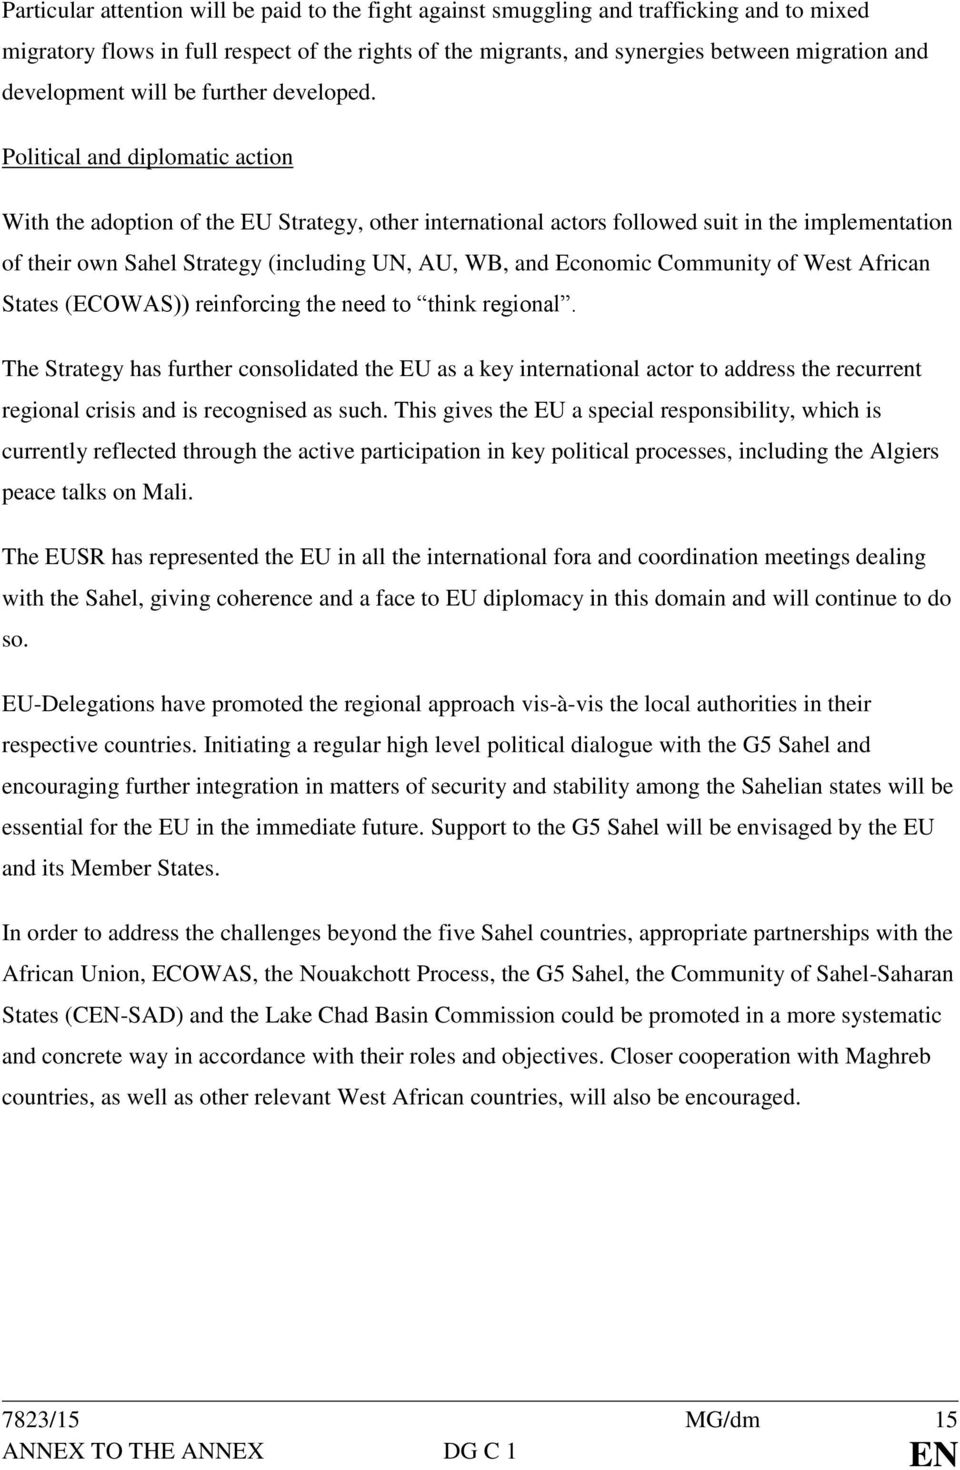 Political and diplomatic action With the adoption of the EU Strategy, other international actors followed suit in the implementation of their own Sahel Strategy (including UN, AU, WB, and Economic